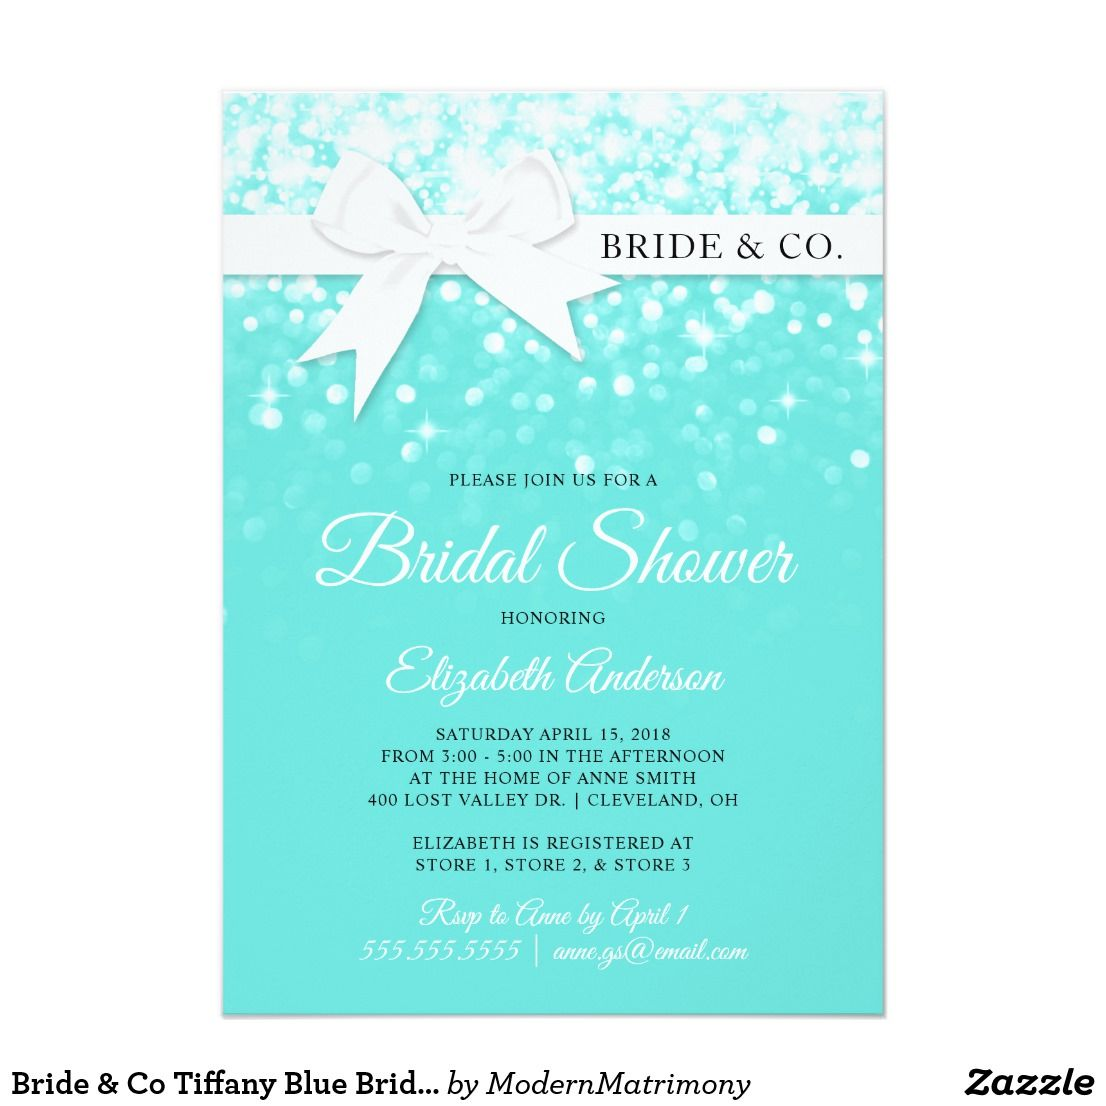 Bride Co Tiffany Blue Bridal Shower Invitation A Charming Femi Blue Bridal Shower Invitations Tiffany Blue Bridal Shower Invitations Tiffany Blue Baby Shower